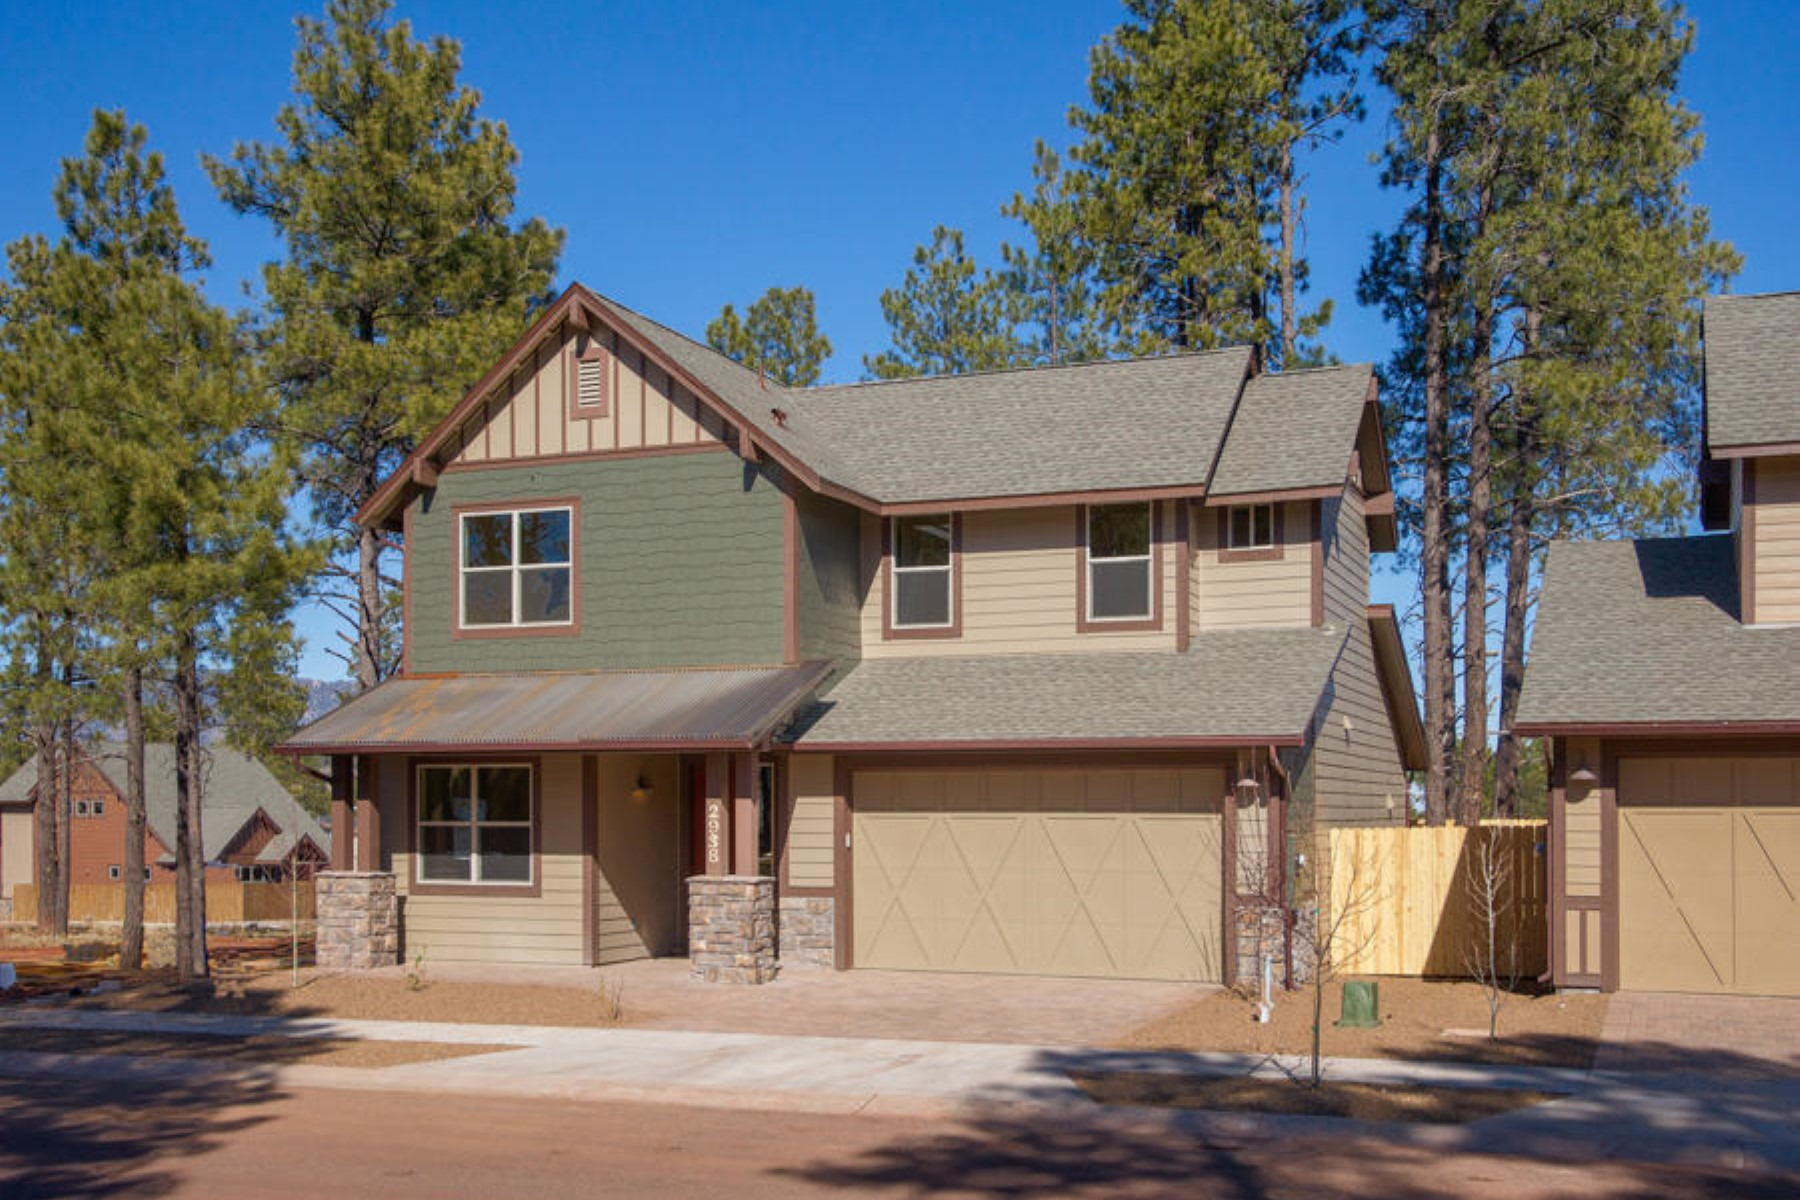 Single Family Home for Sale at 1667 plan is another homebuyer favorite featuring a functional and open layout 2905 W Paz De Avenida Lot 25 Flagstaff, Arizona 86001 United States